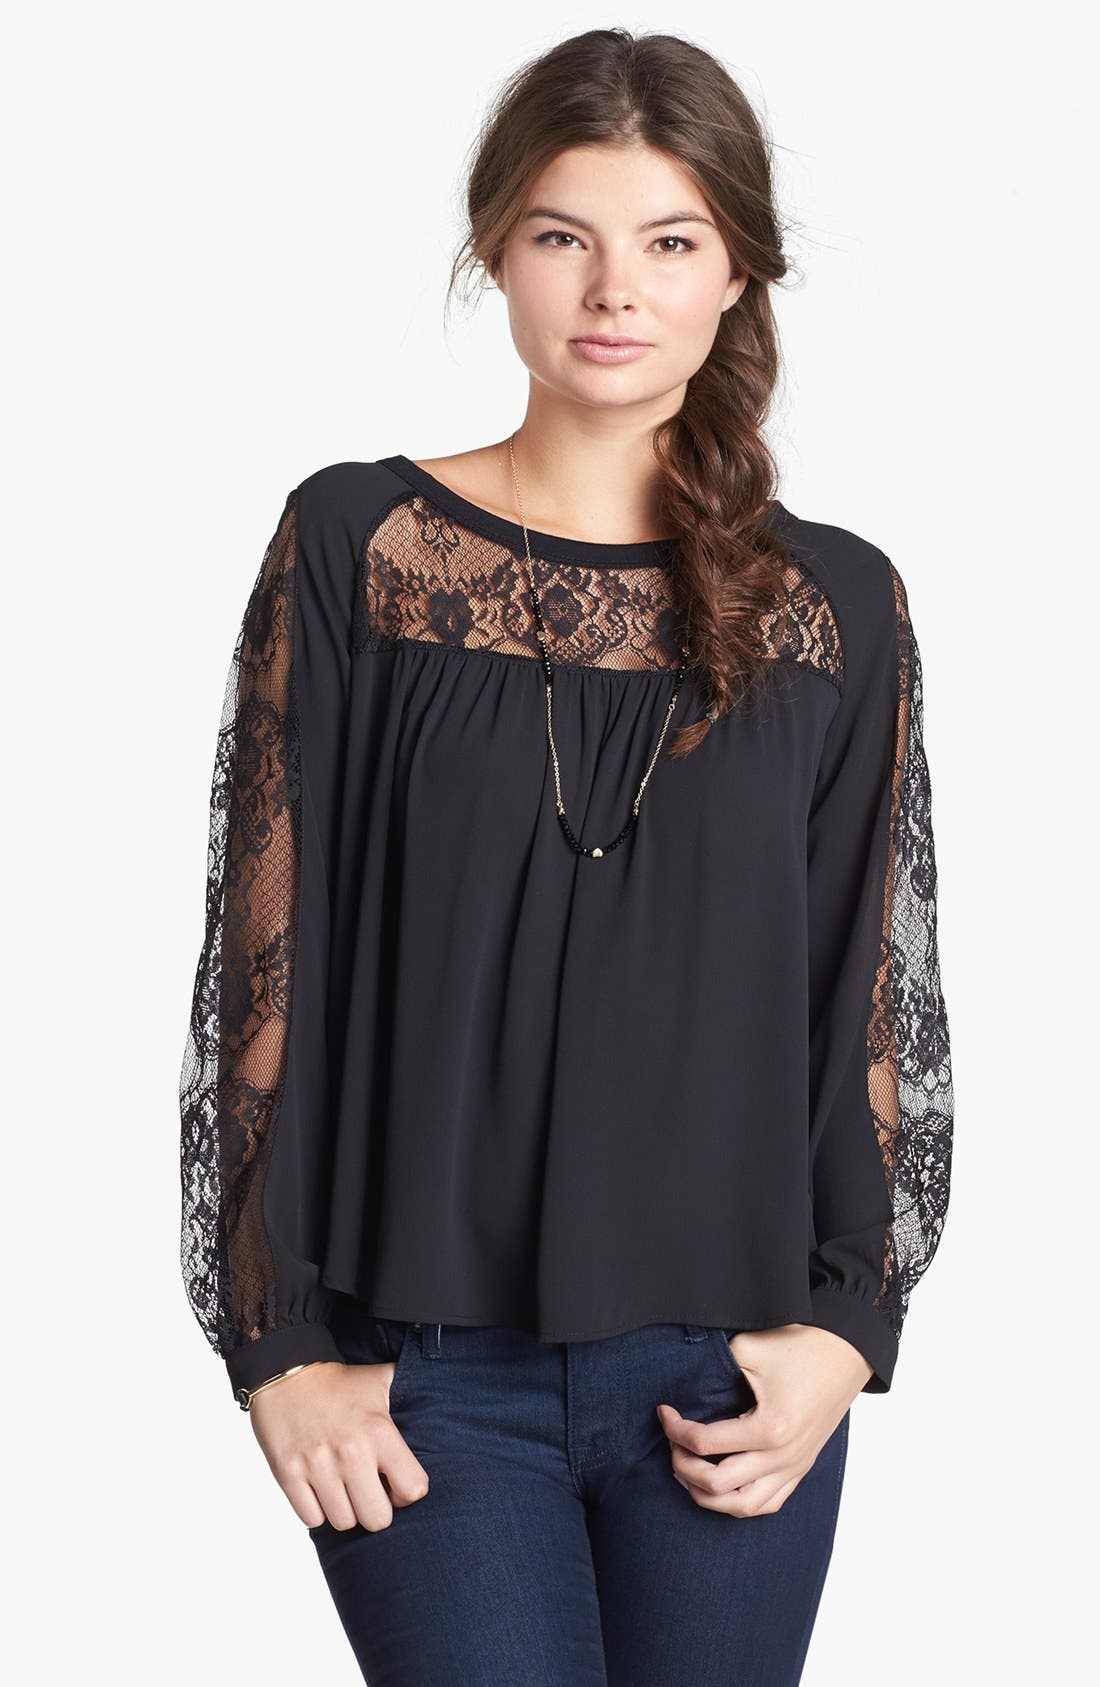 Alternate Image 1 Selected - Elodie Lace Inset Peasant Top (Juniors) (Online Only)